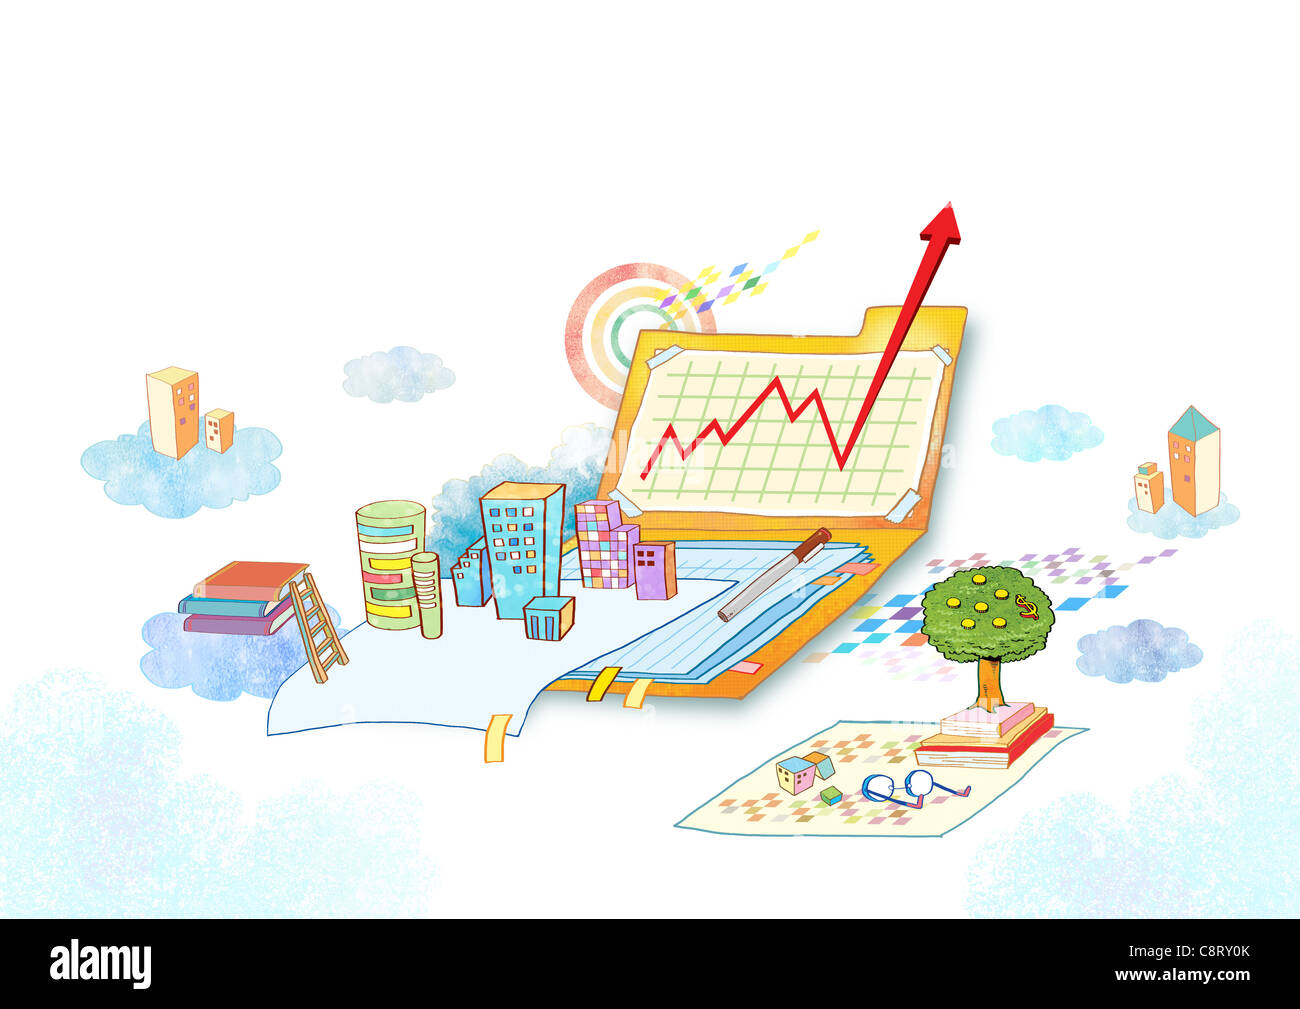 Illustration of buildings, books and arrow sign - Stock Image